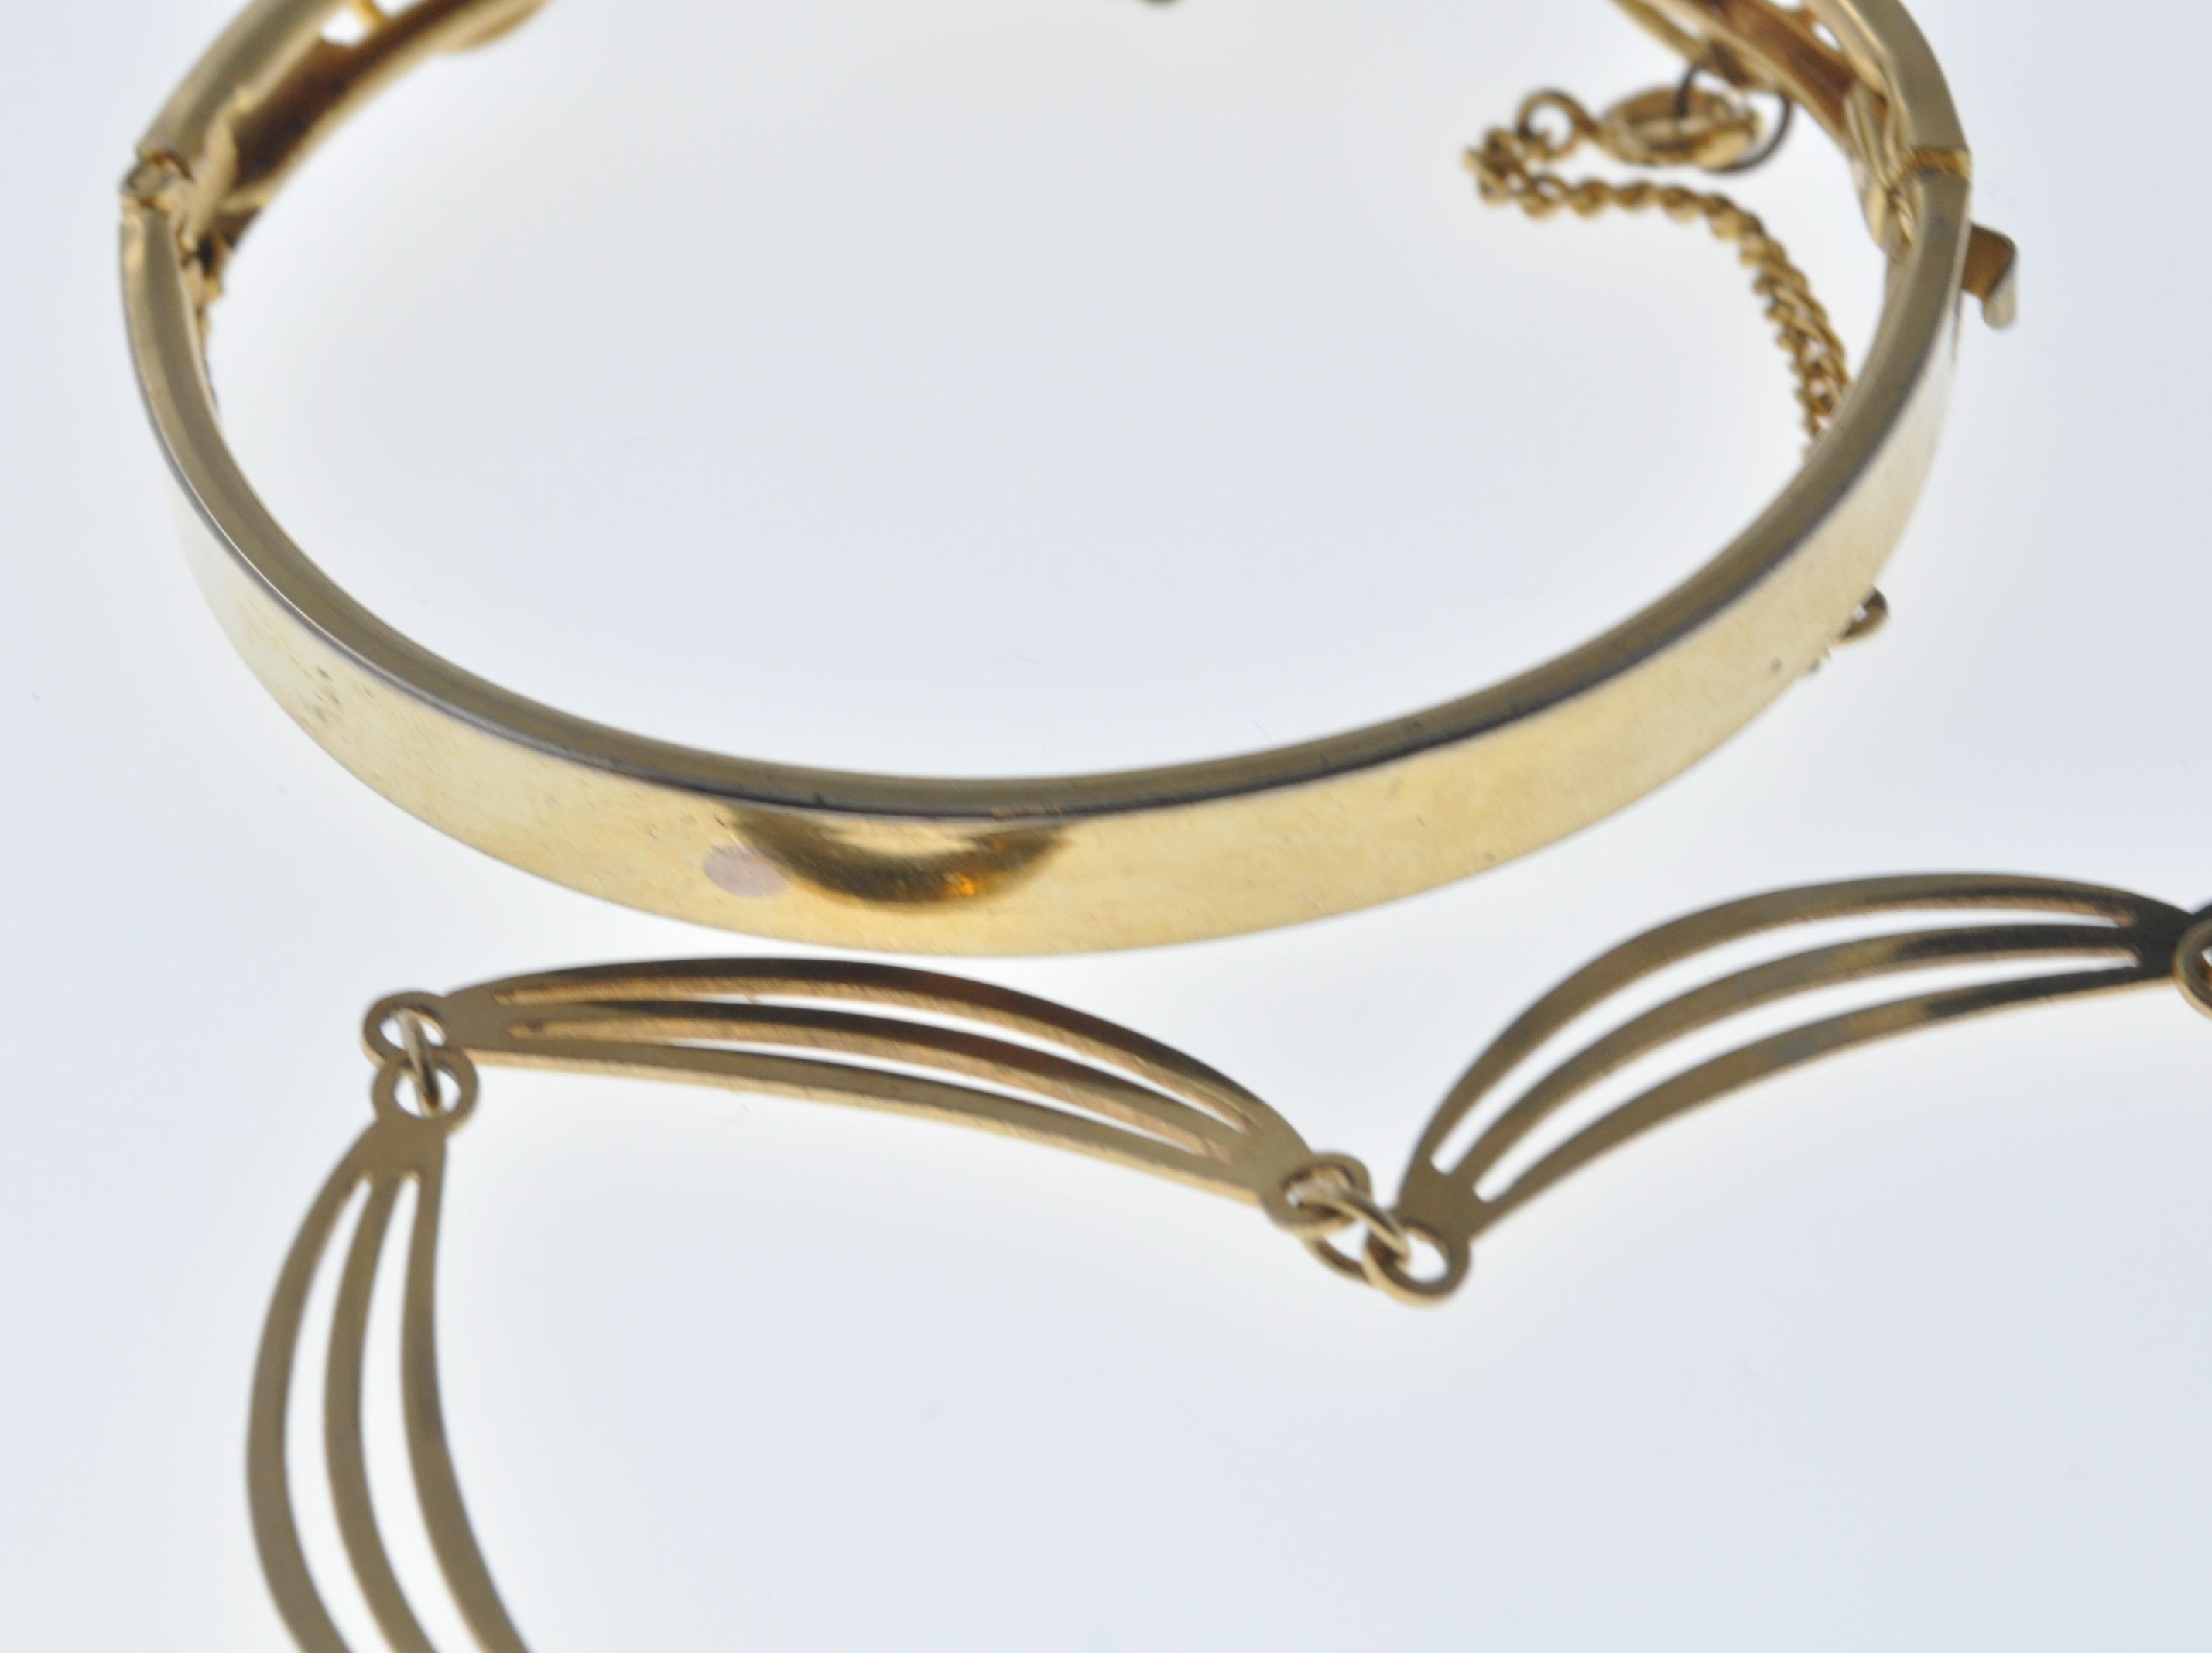 VINTAGE BANGLE AND NECKLACE - Image 4 of 9